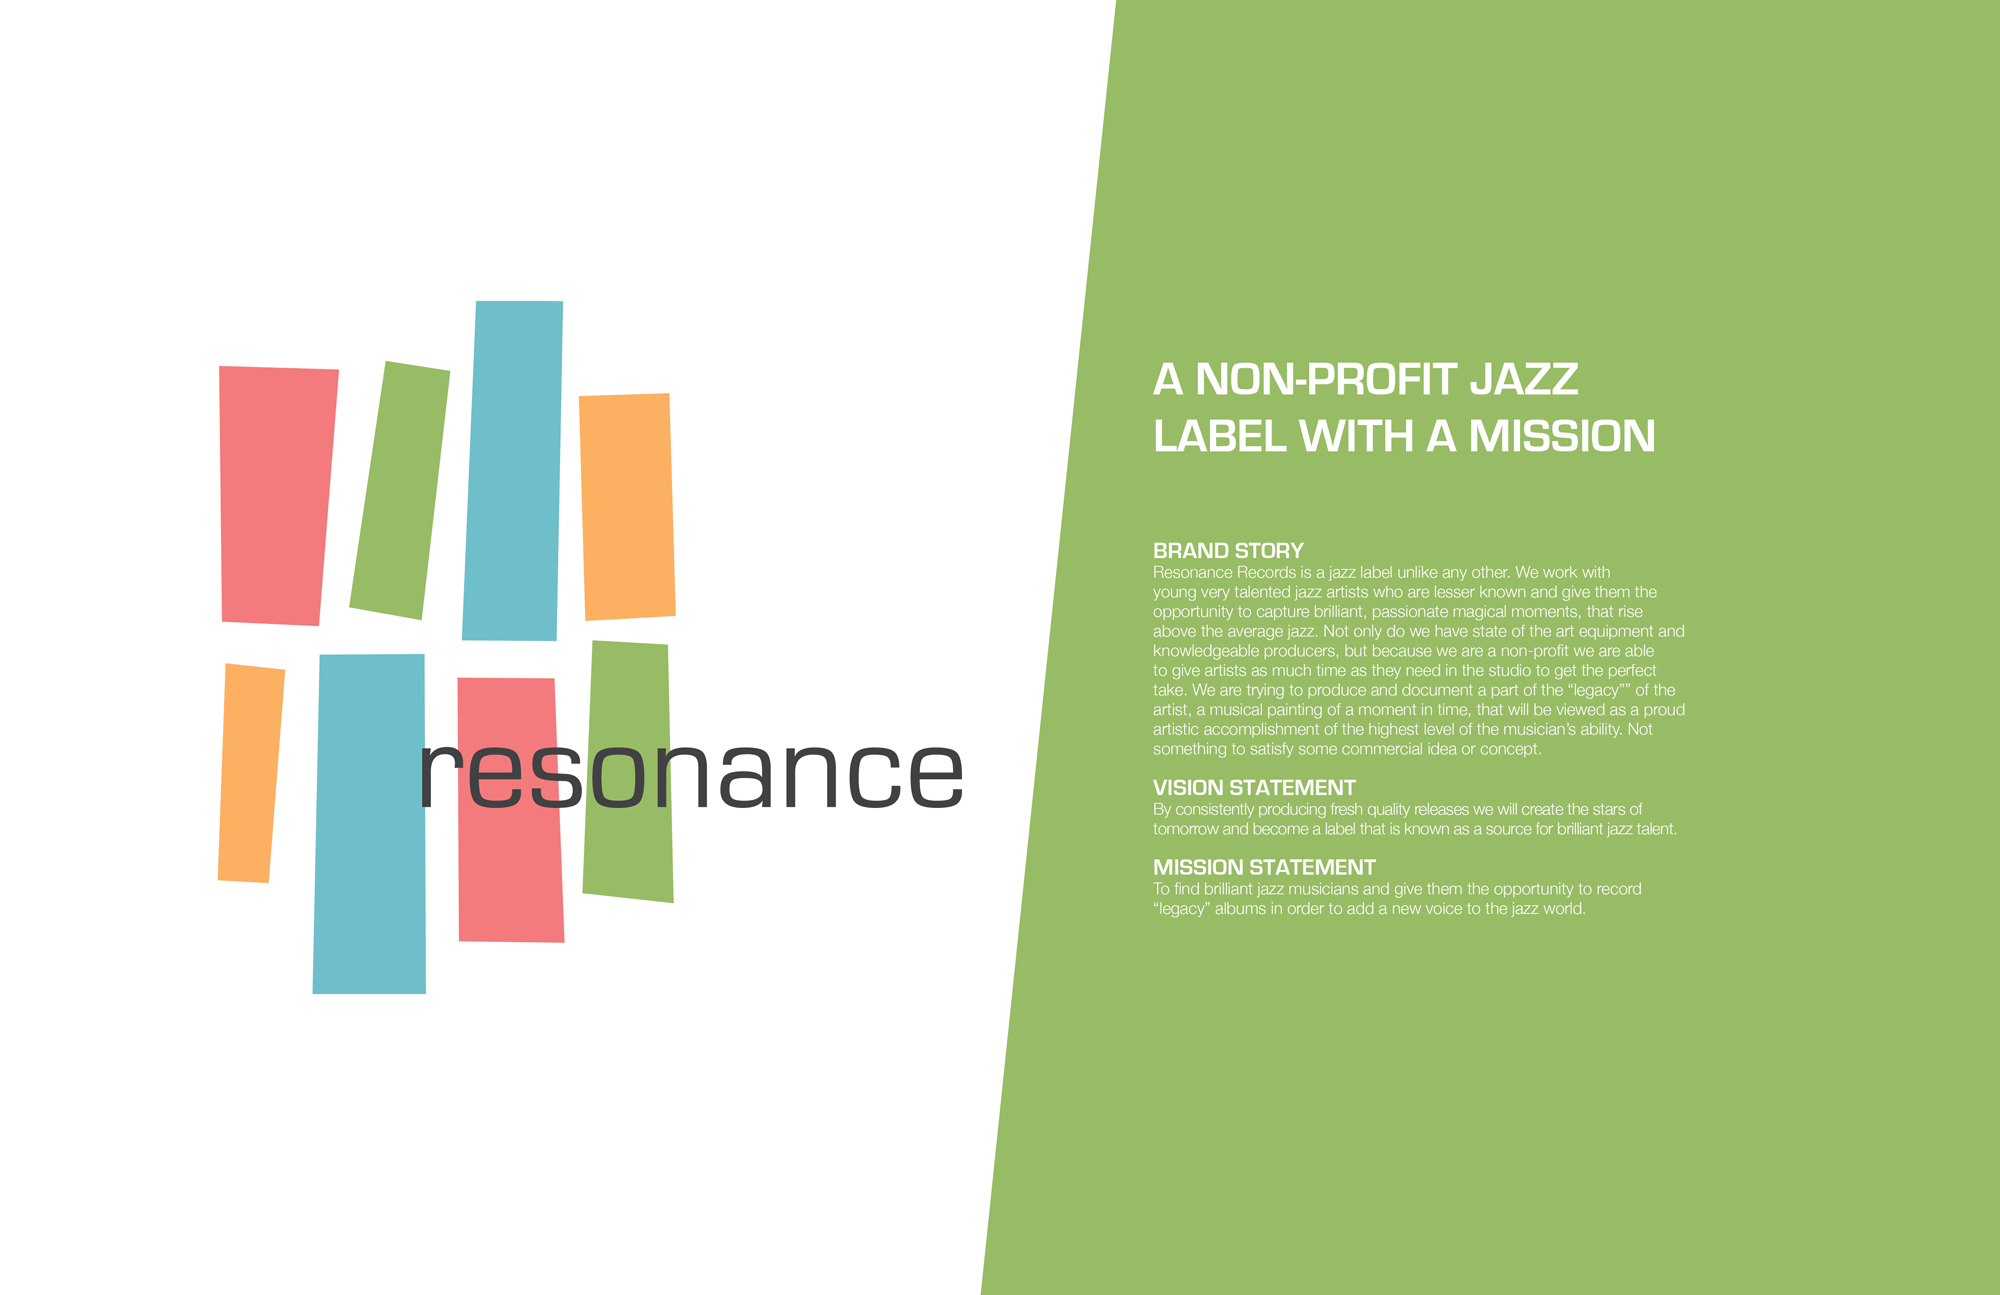 Resonance_Slides_Small5.jpg